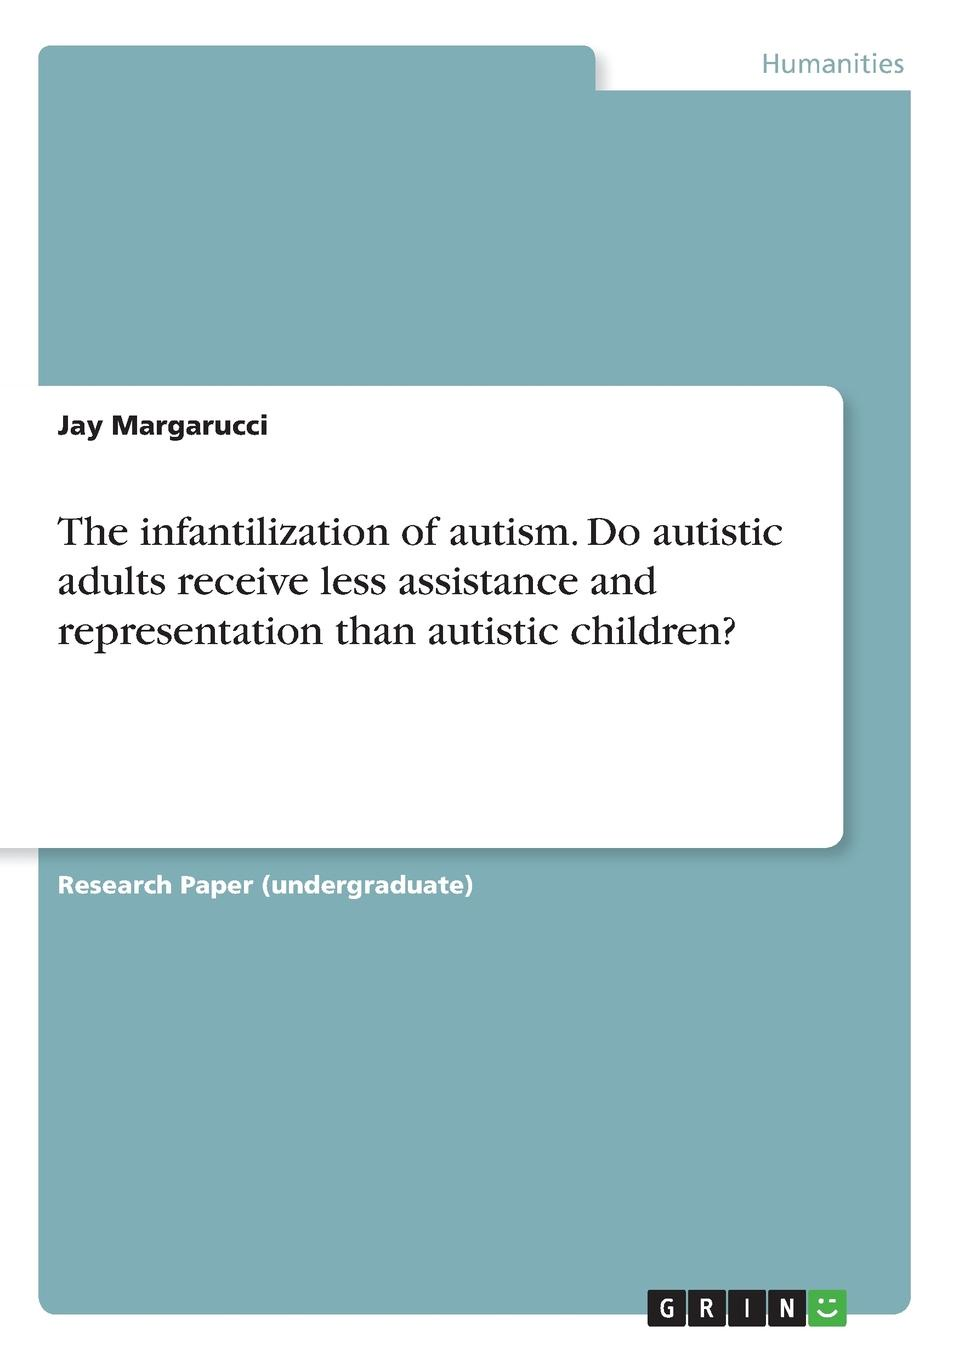 Jay Margarucci The infantilization of autism. Do autistic adults receive less assistance and representation than autistic children. what constitutes an appropriate education for autistic children